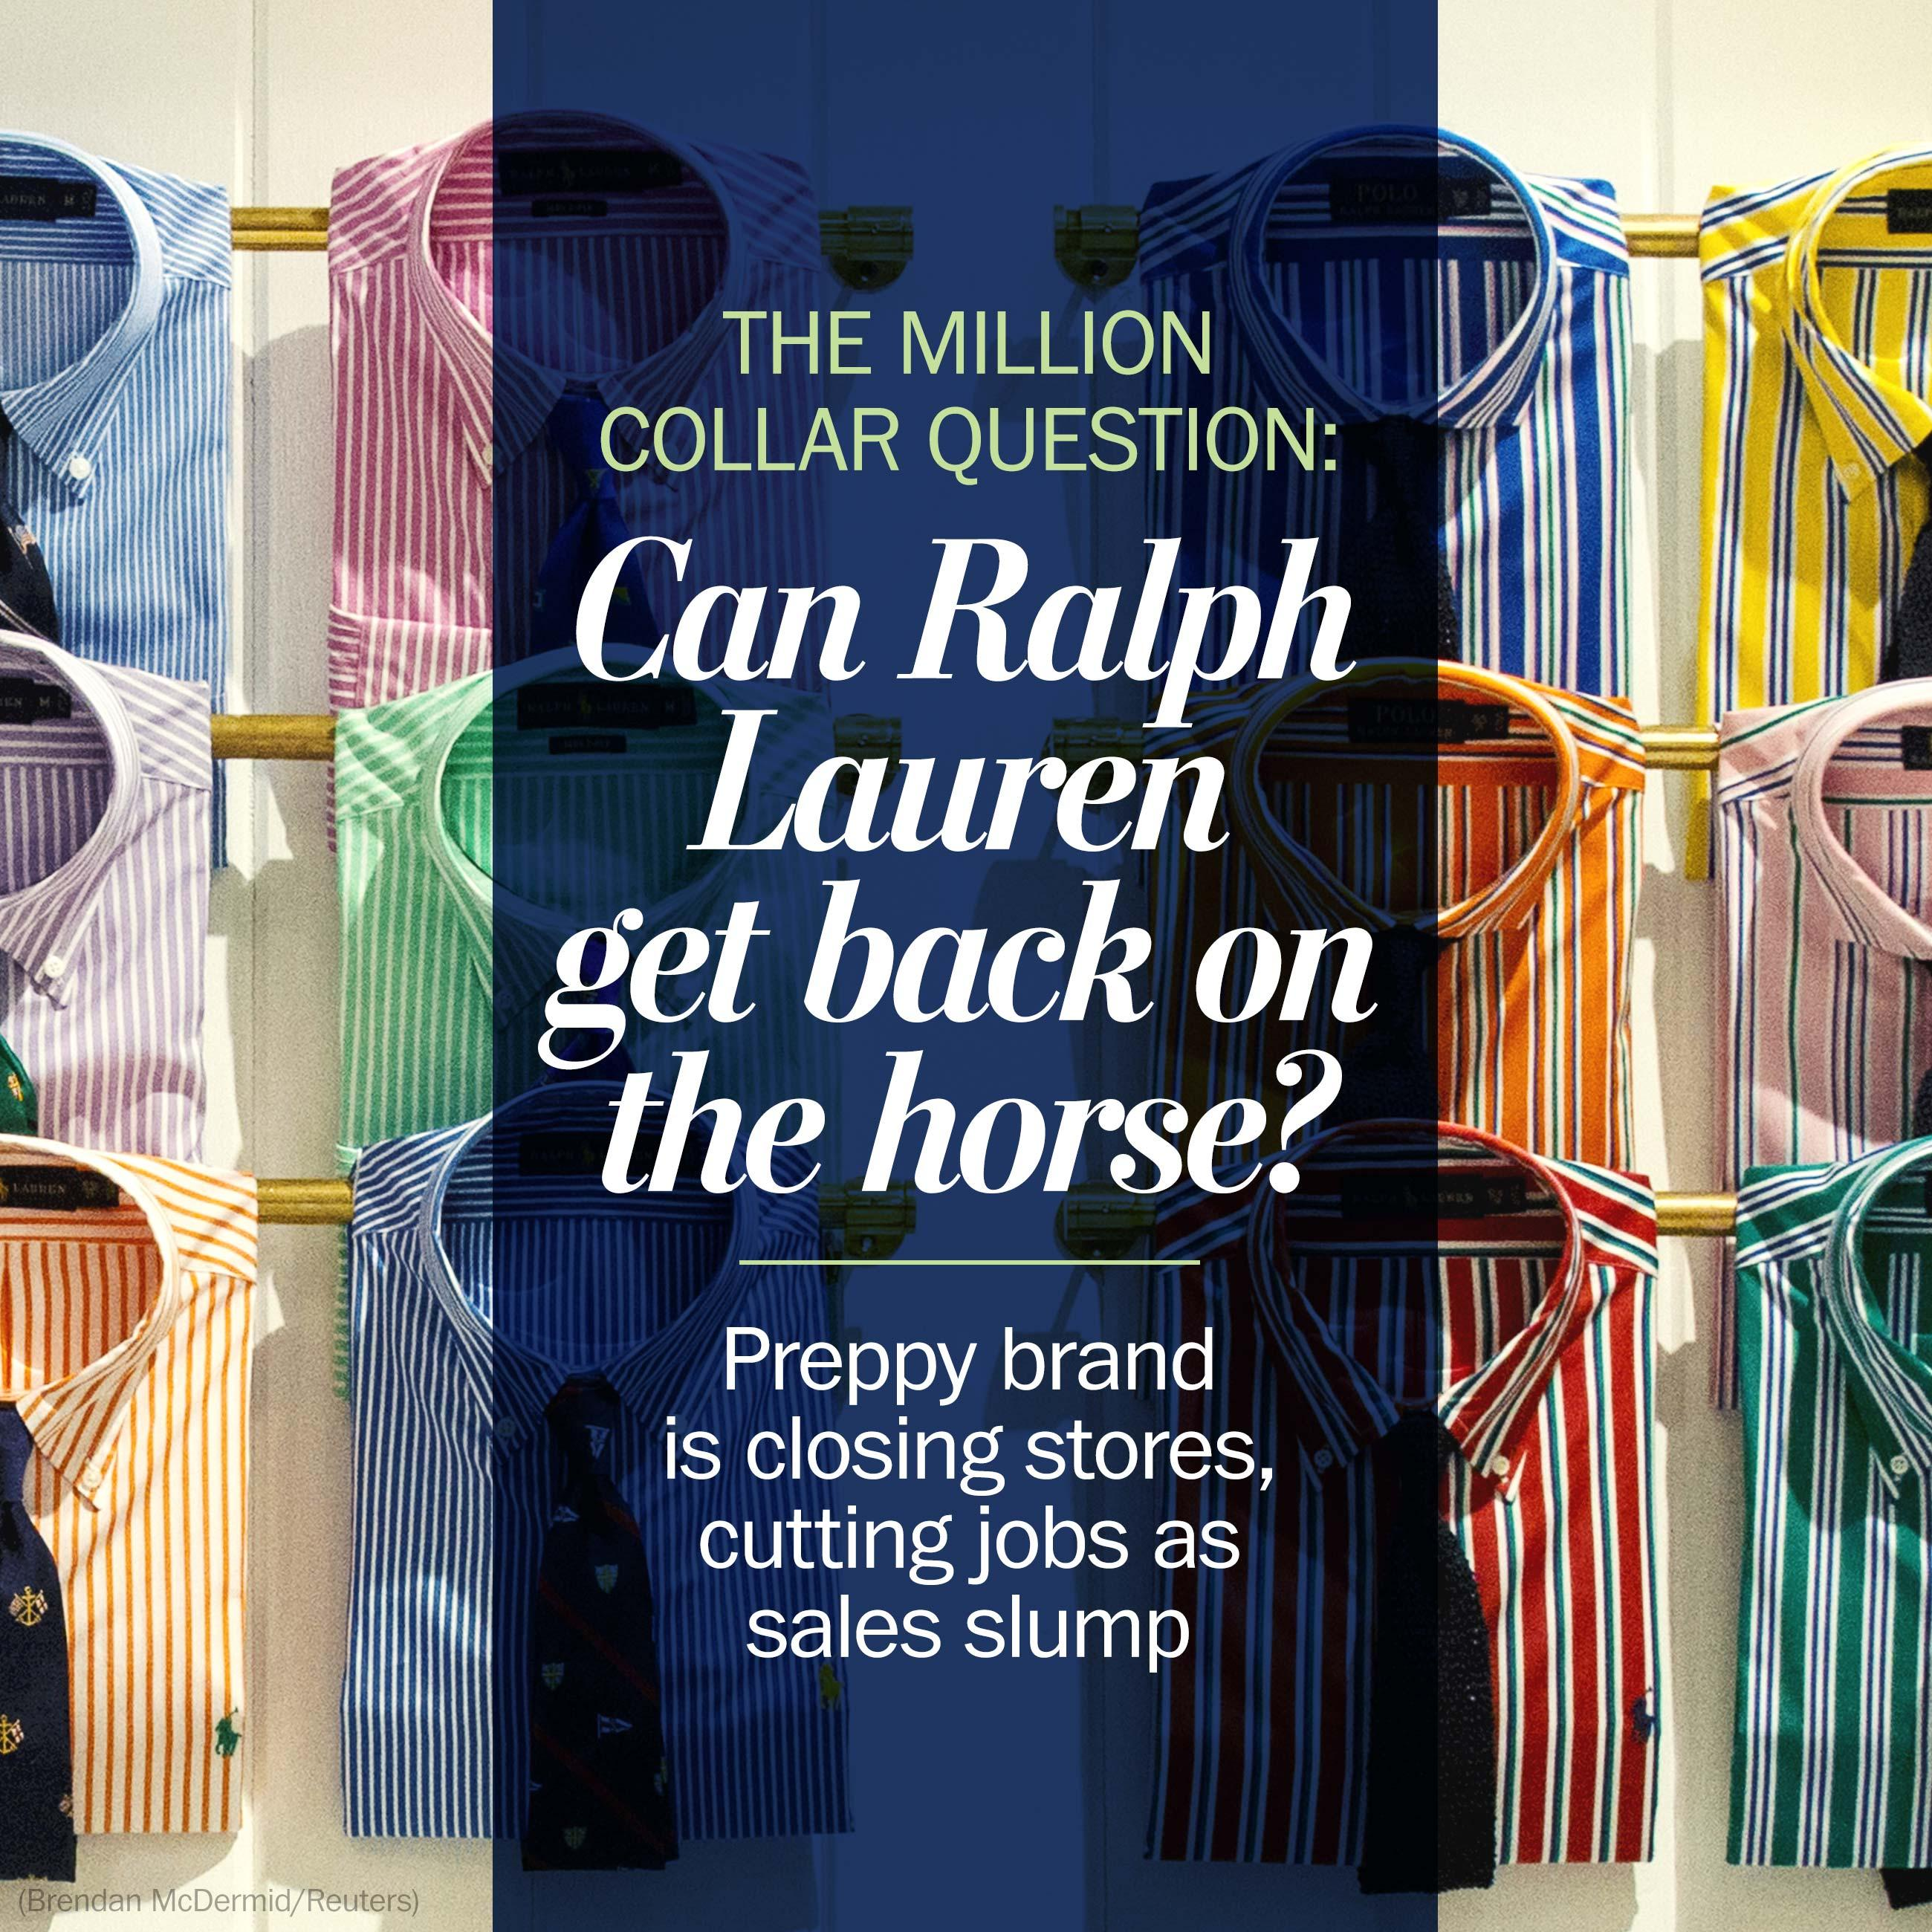 Why big changes are ahead at Ralph Lauren